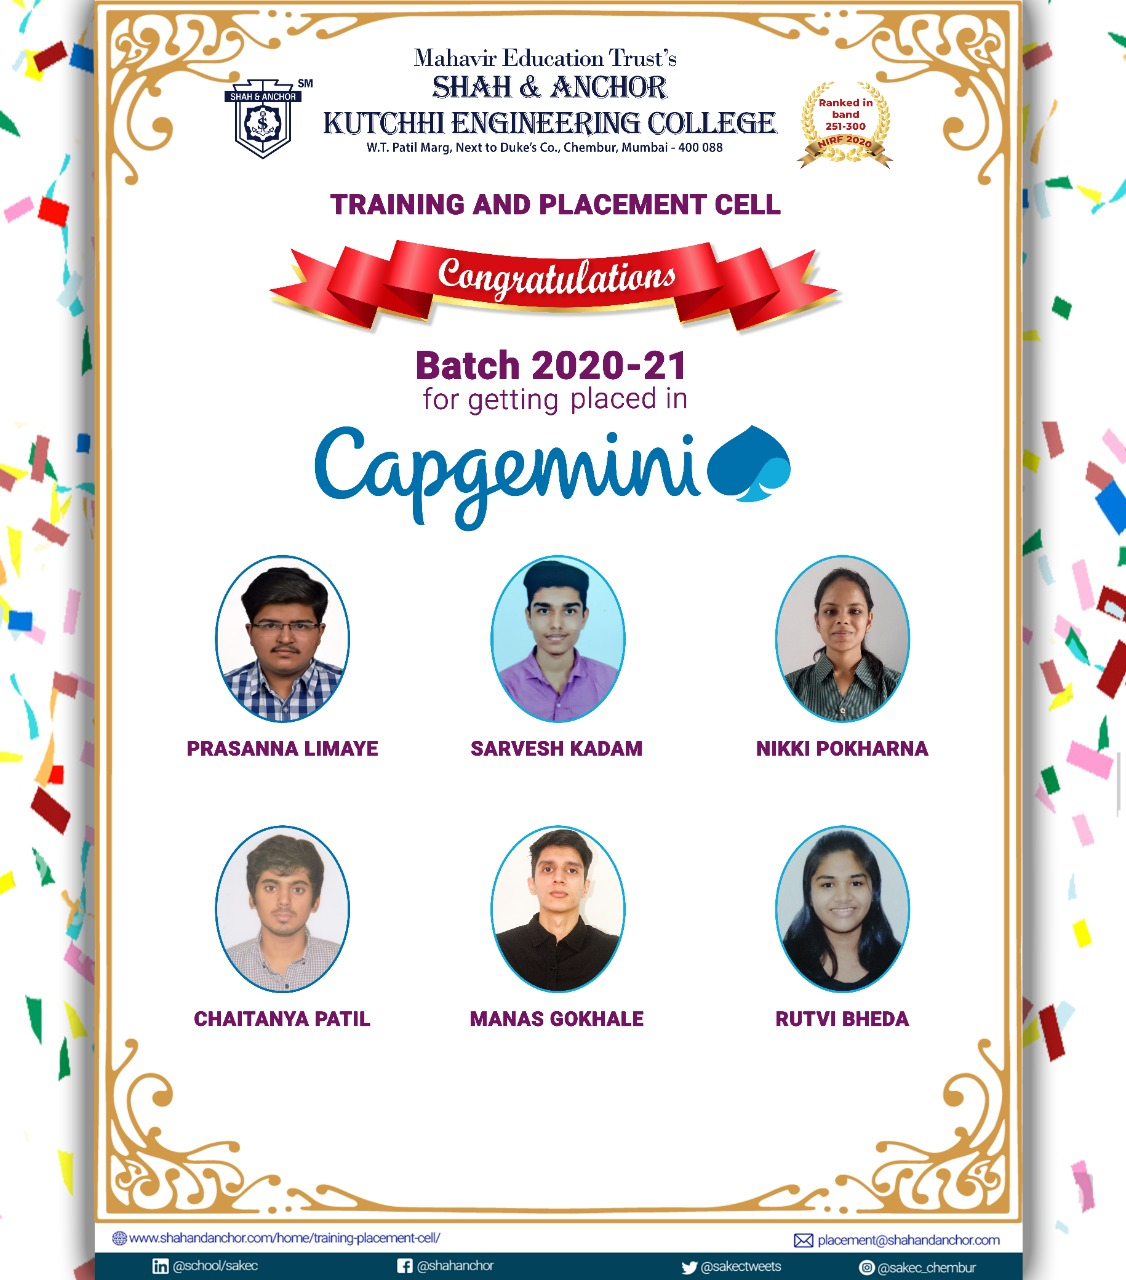 Capgemini placed batch 20-21